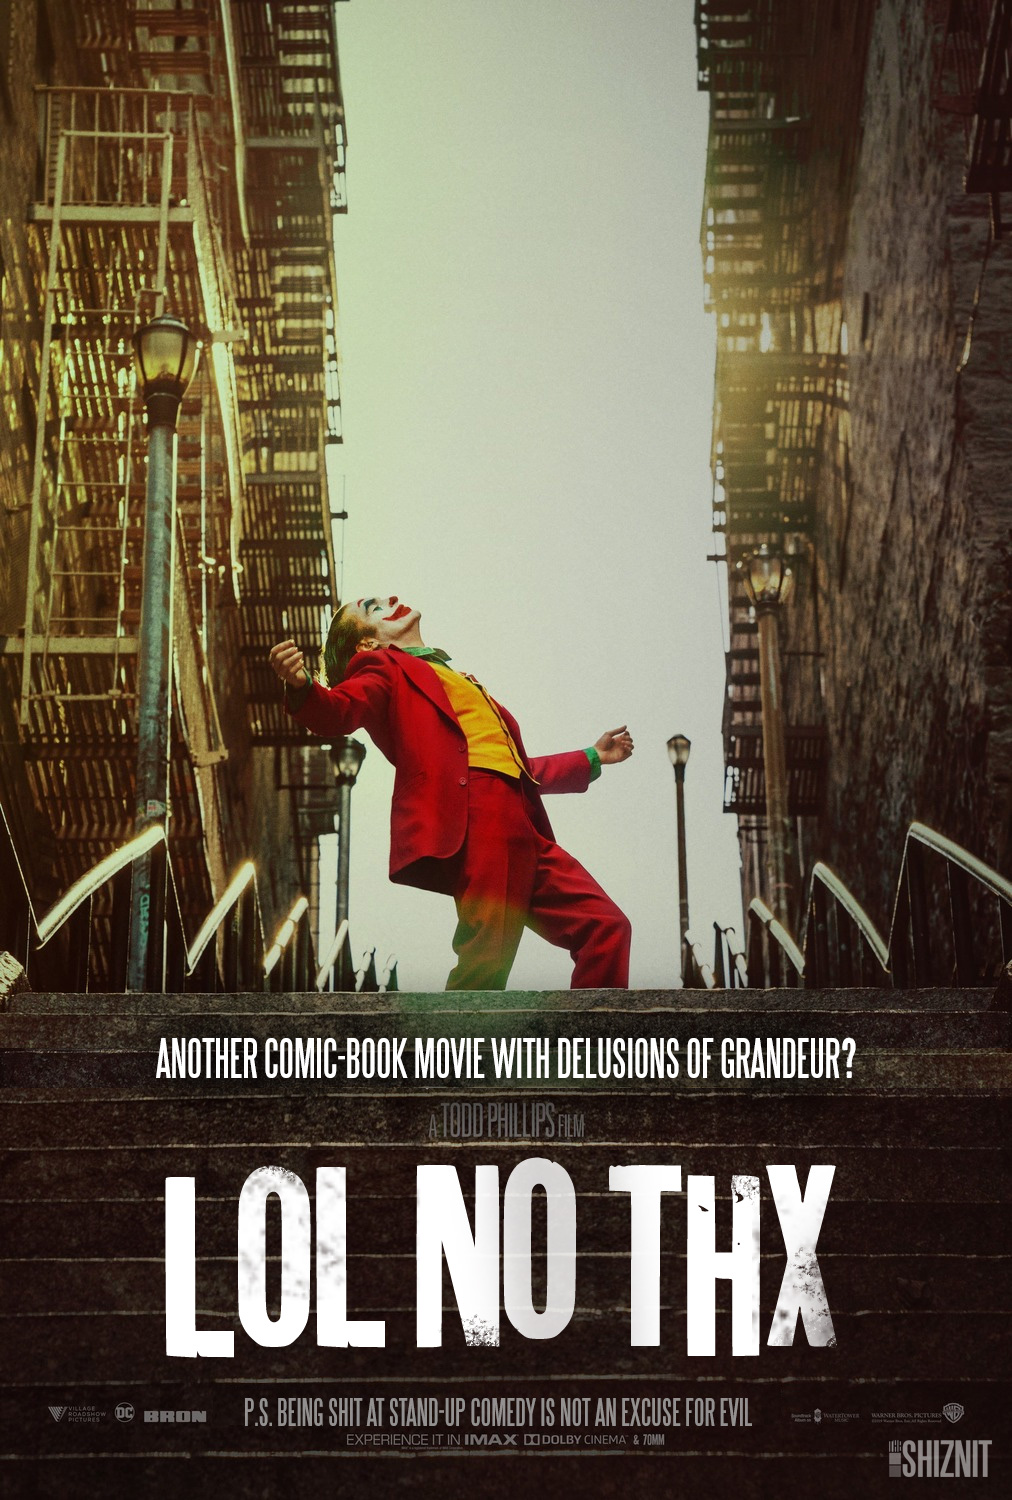 If 2020 S Oscar Nominated Movie Posters Told The Truth Movie Feature Theshiznit Co Uk